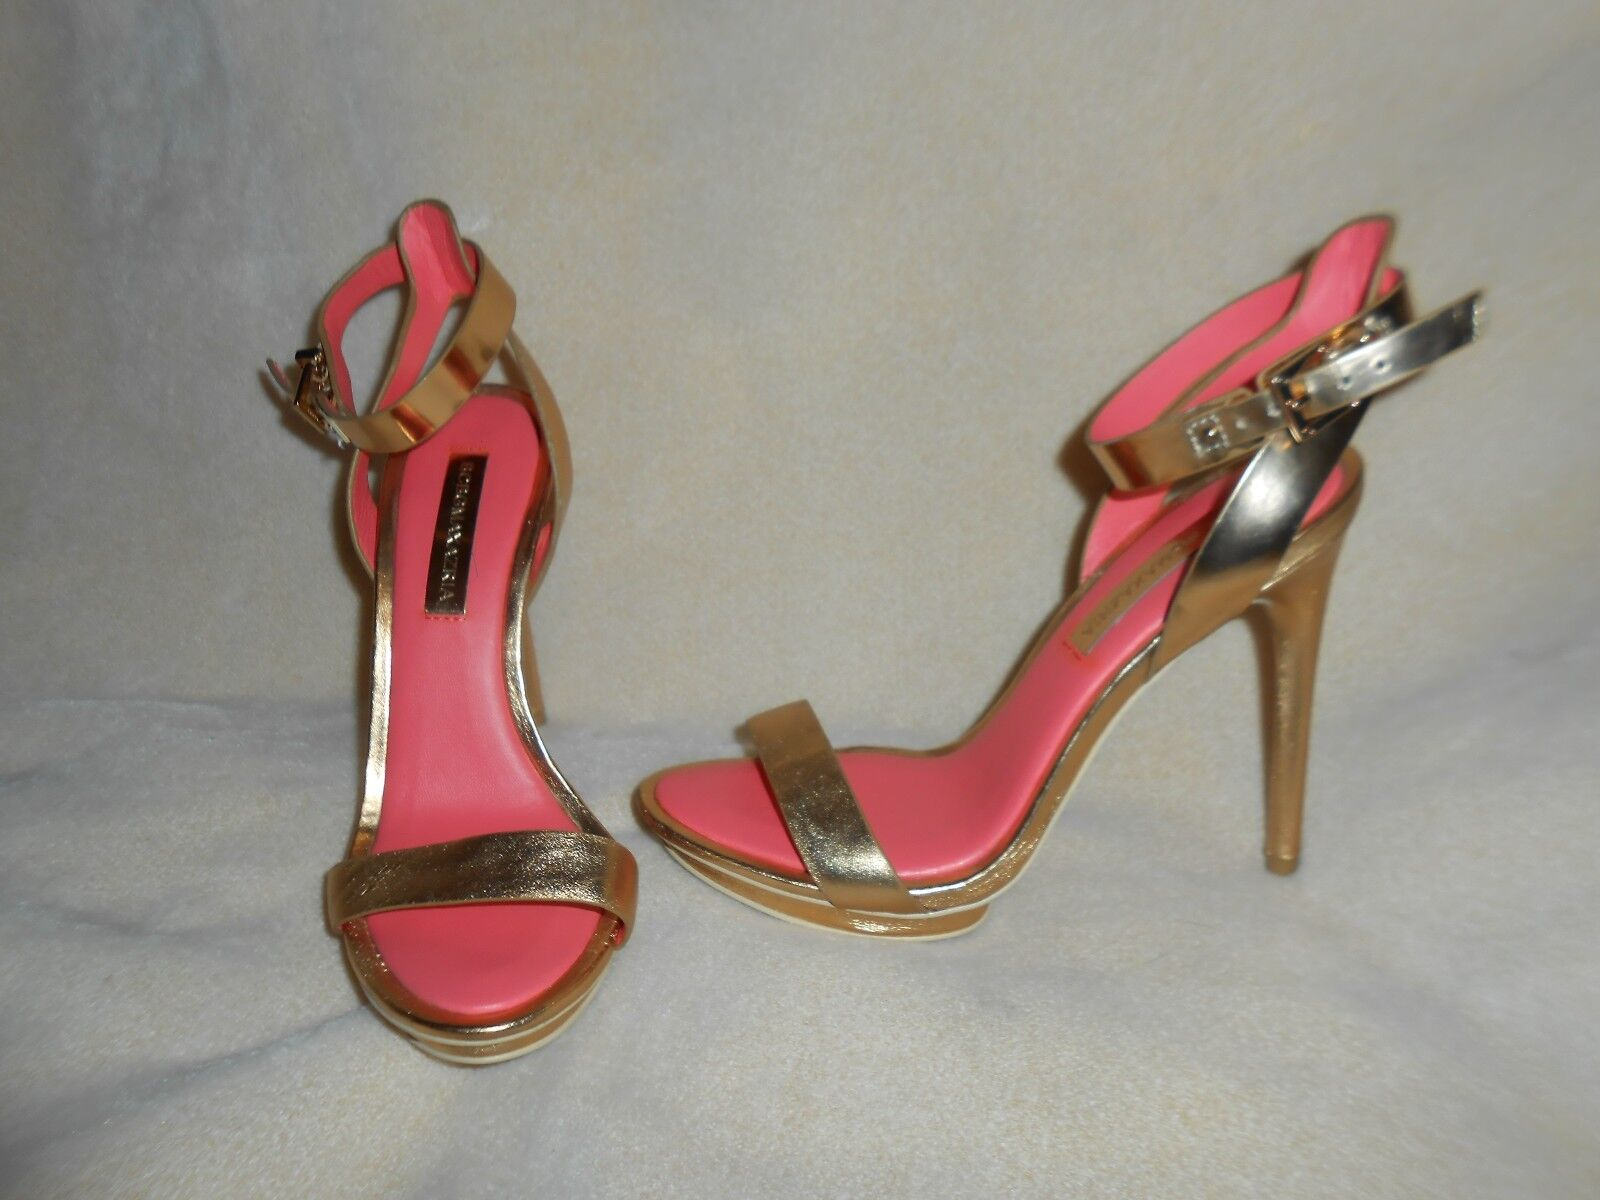 BCBG MAX AZRIA WOMAN'S BR HED GOLD SIZE w/ GOLD ANKLE STRAP PUMP SIZE GOLD 7 1/2 B aadf07